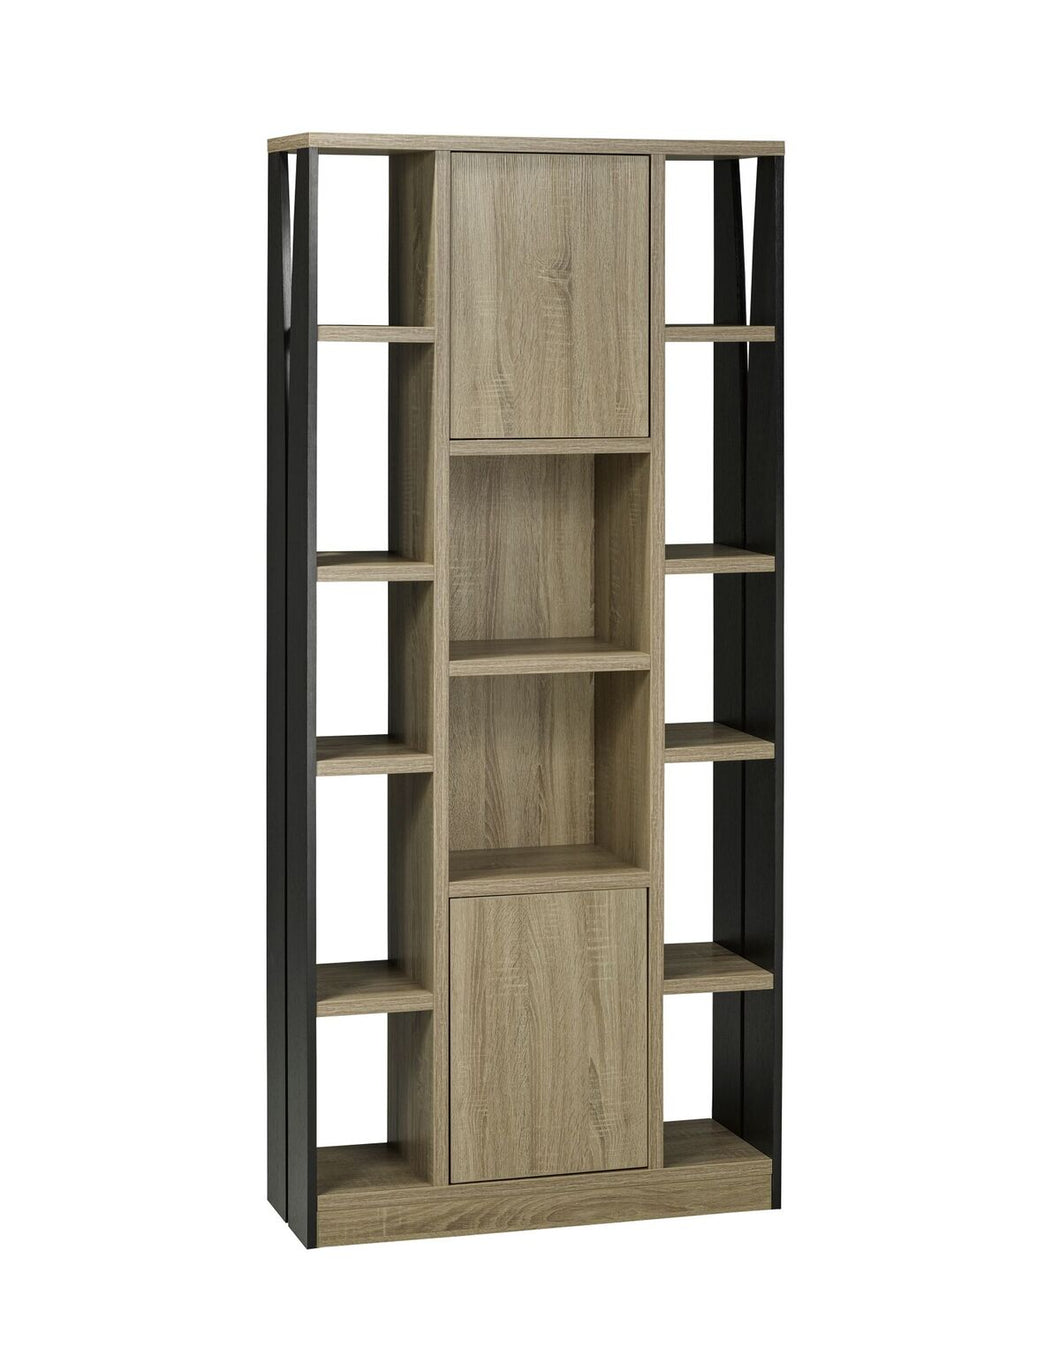 Multi-Tier Display Cabinet with Storage, Dark Taupe/Black